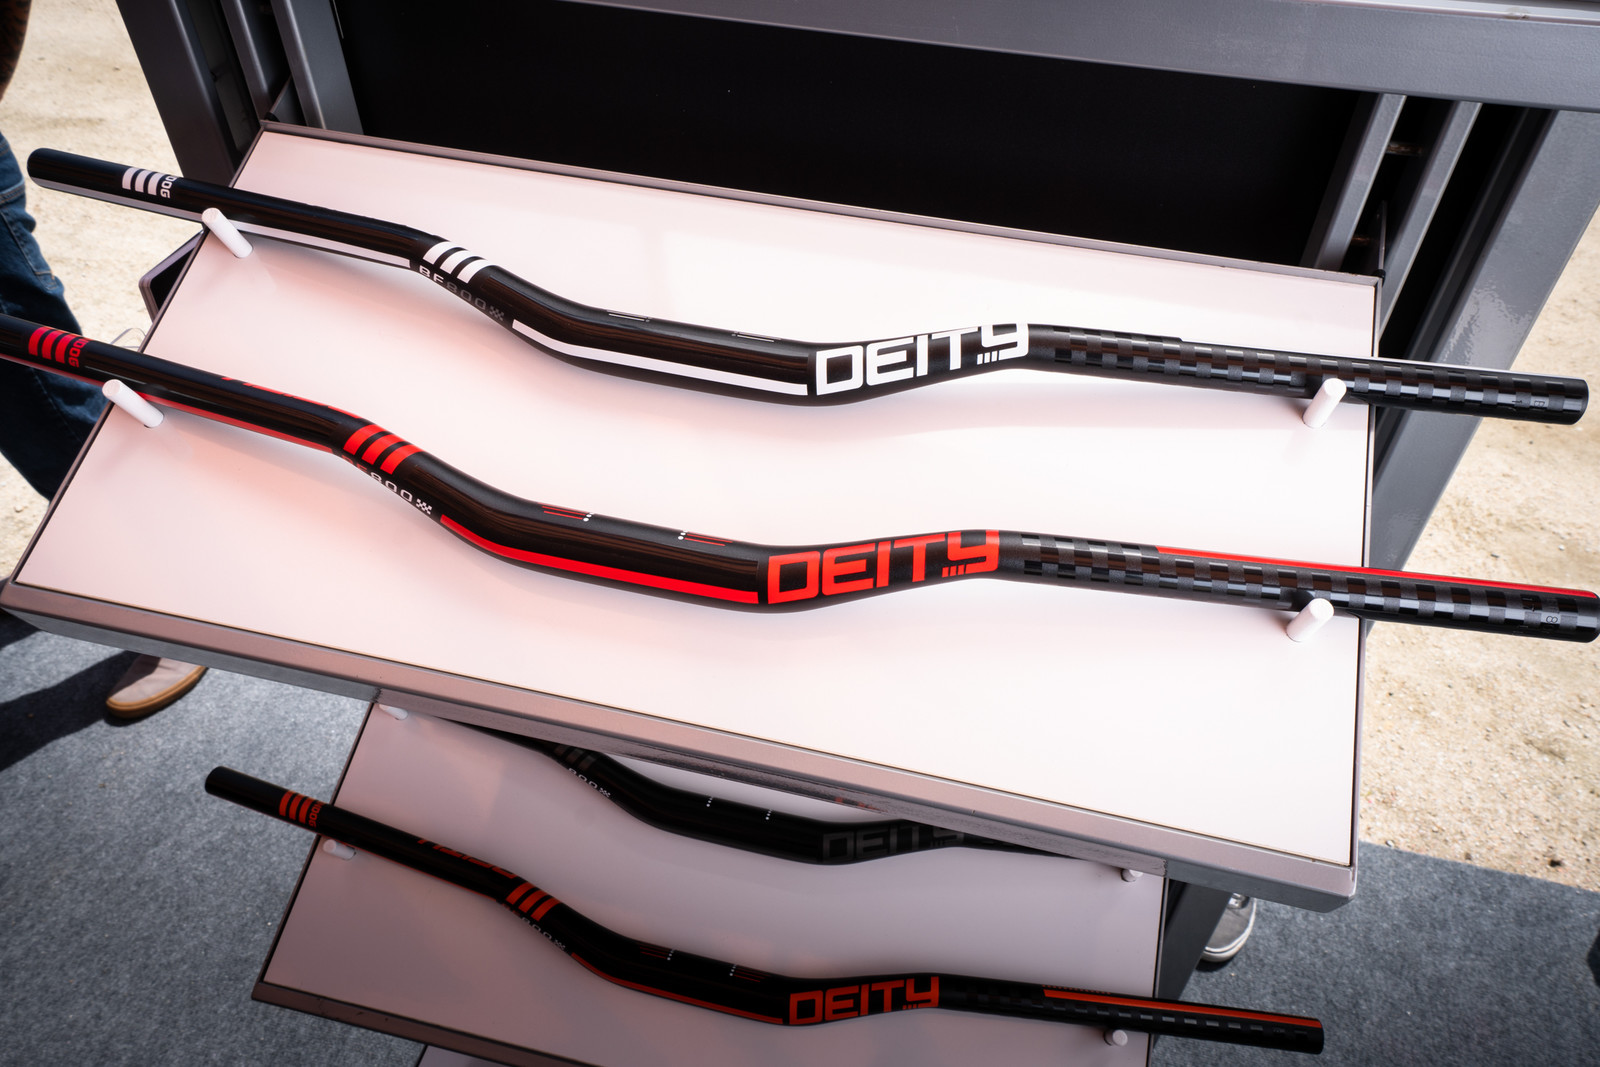 Deity Nails the Details on All-New Brendog Handlebar and Limited Edition Turq Series - Sea Otter Classic